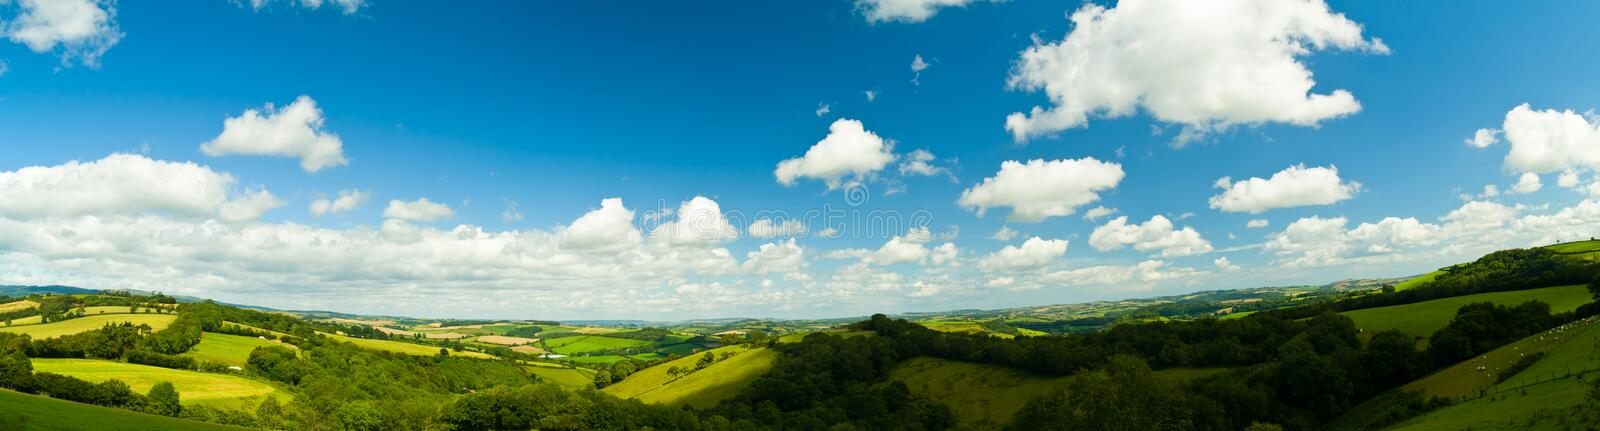 Download Panorama of Dorset England stock photo. Image of england - 26656438